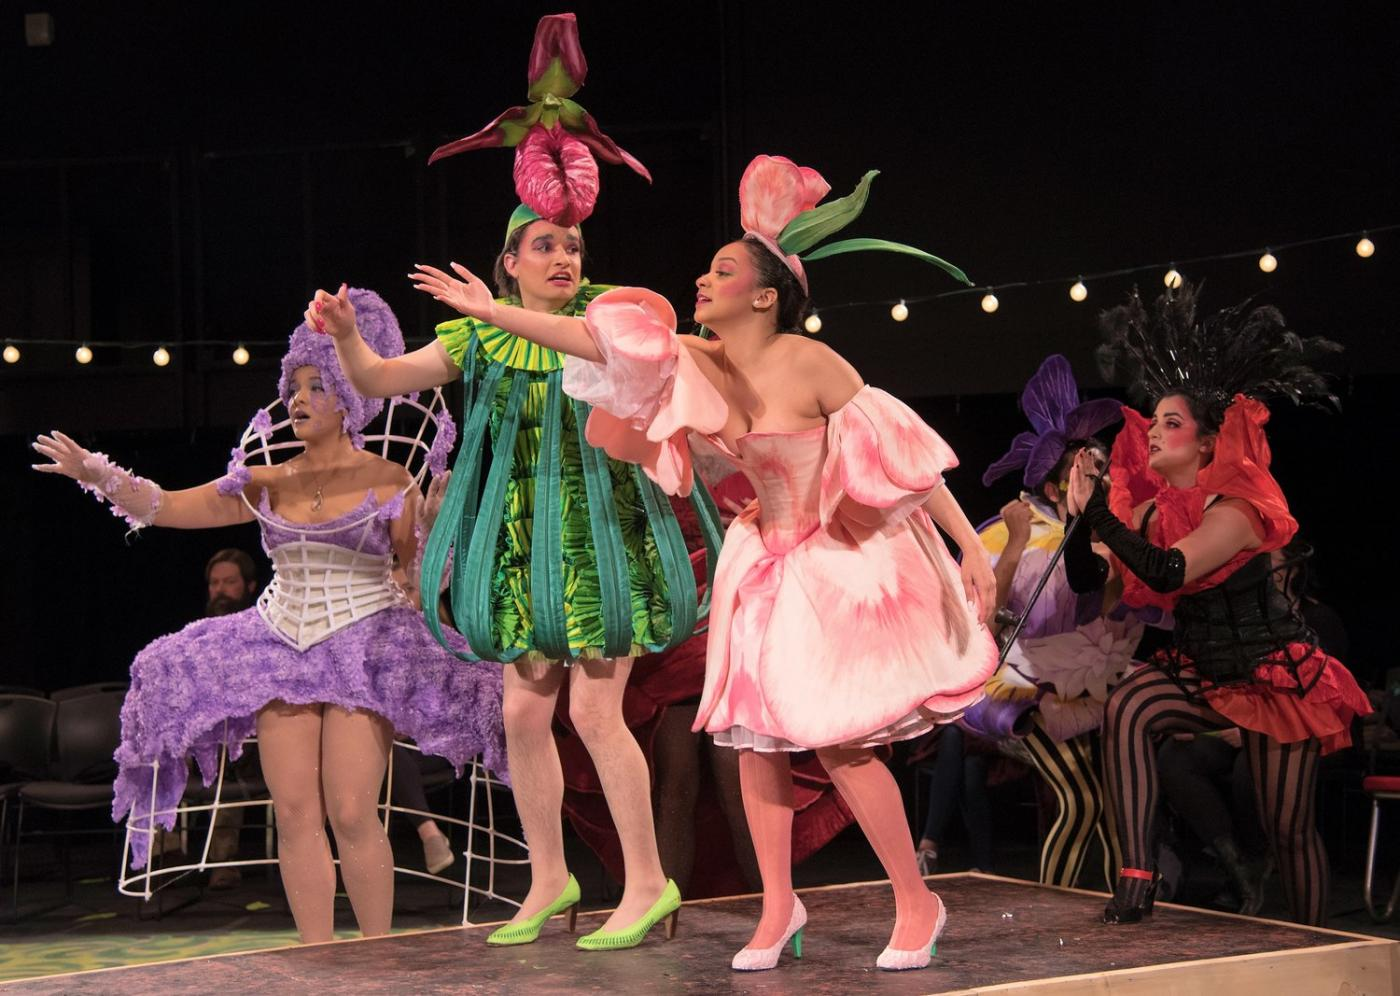 On a stage, four women in purple, pink, and green flower costumes perform.